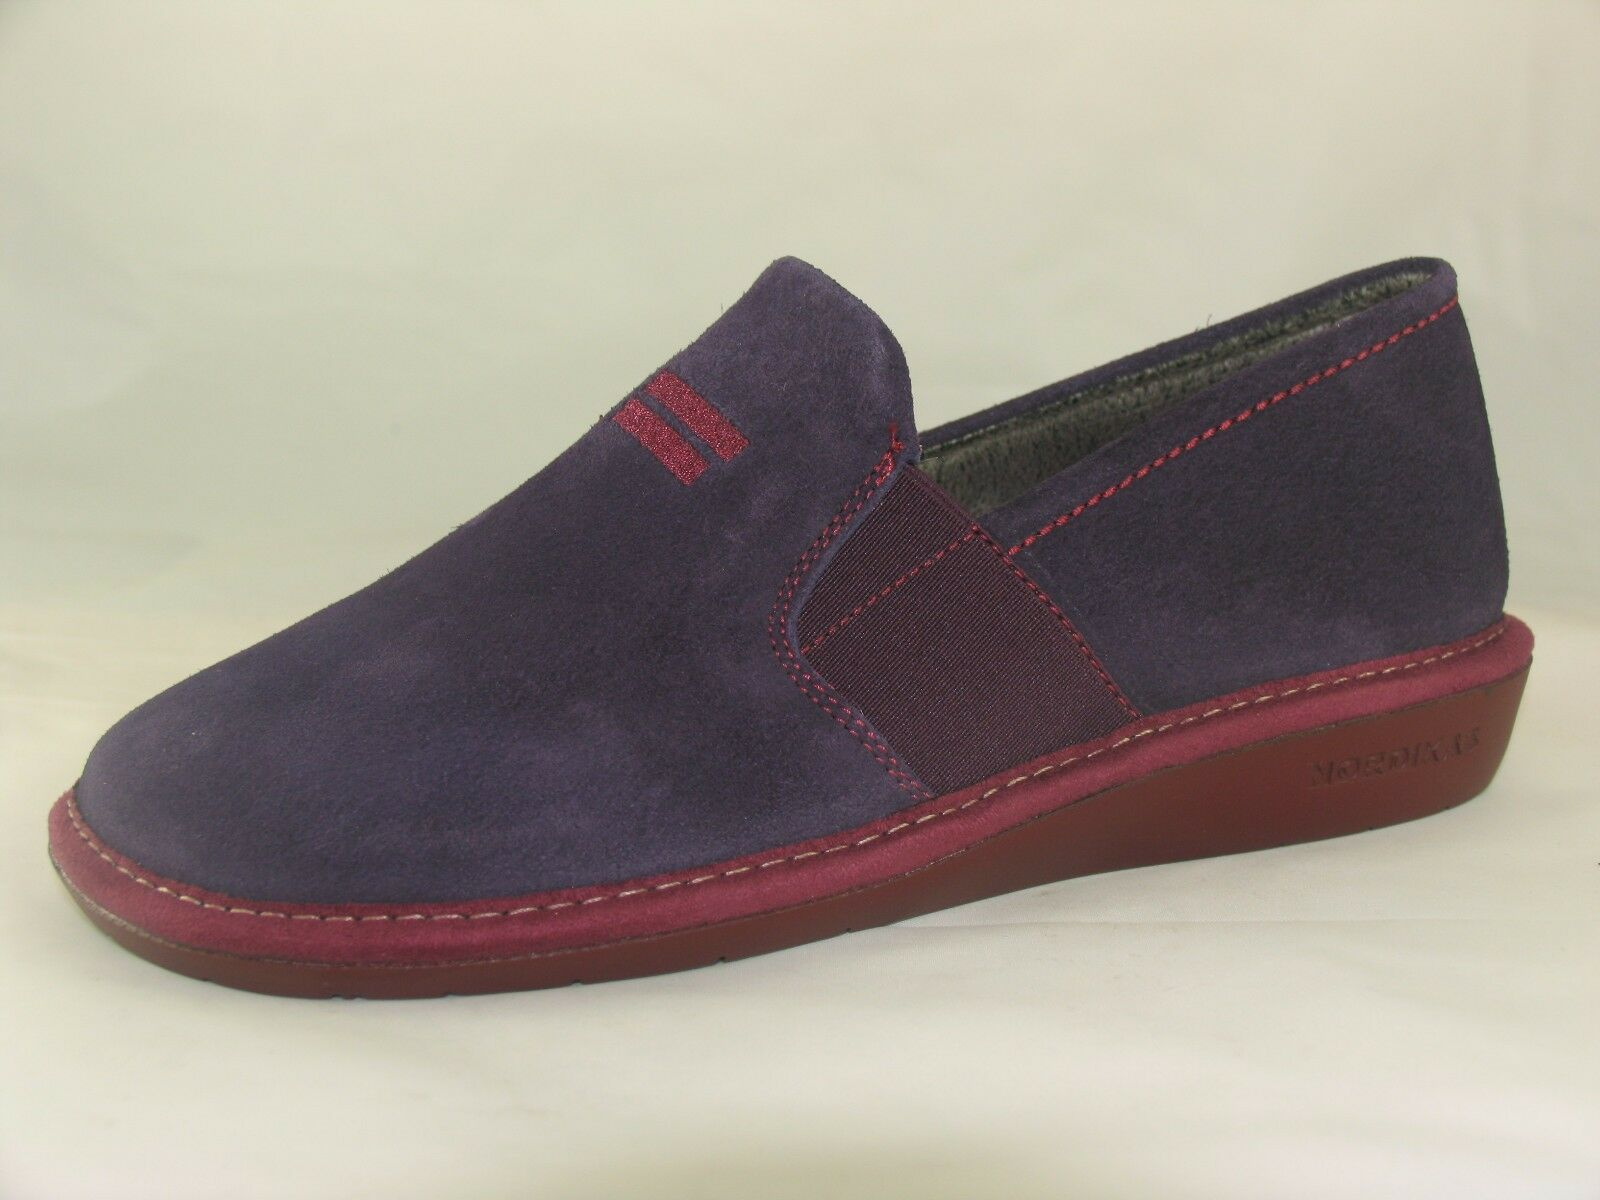 Damenschuhe Nordikas 9161 Purple Suede Leder Full Slippers